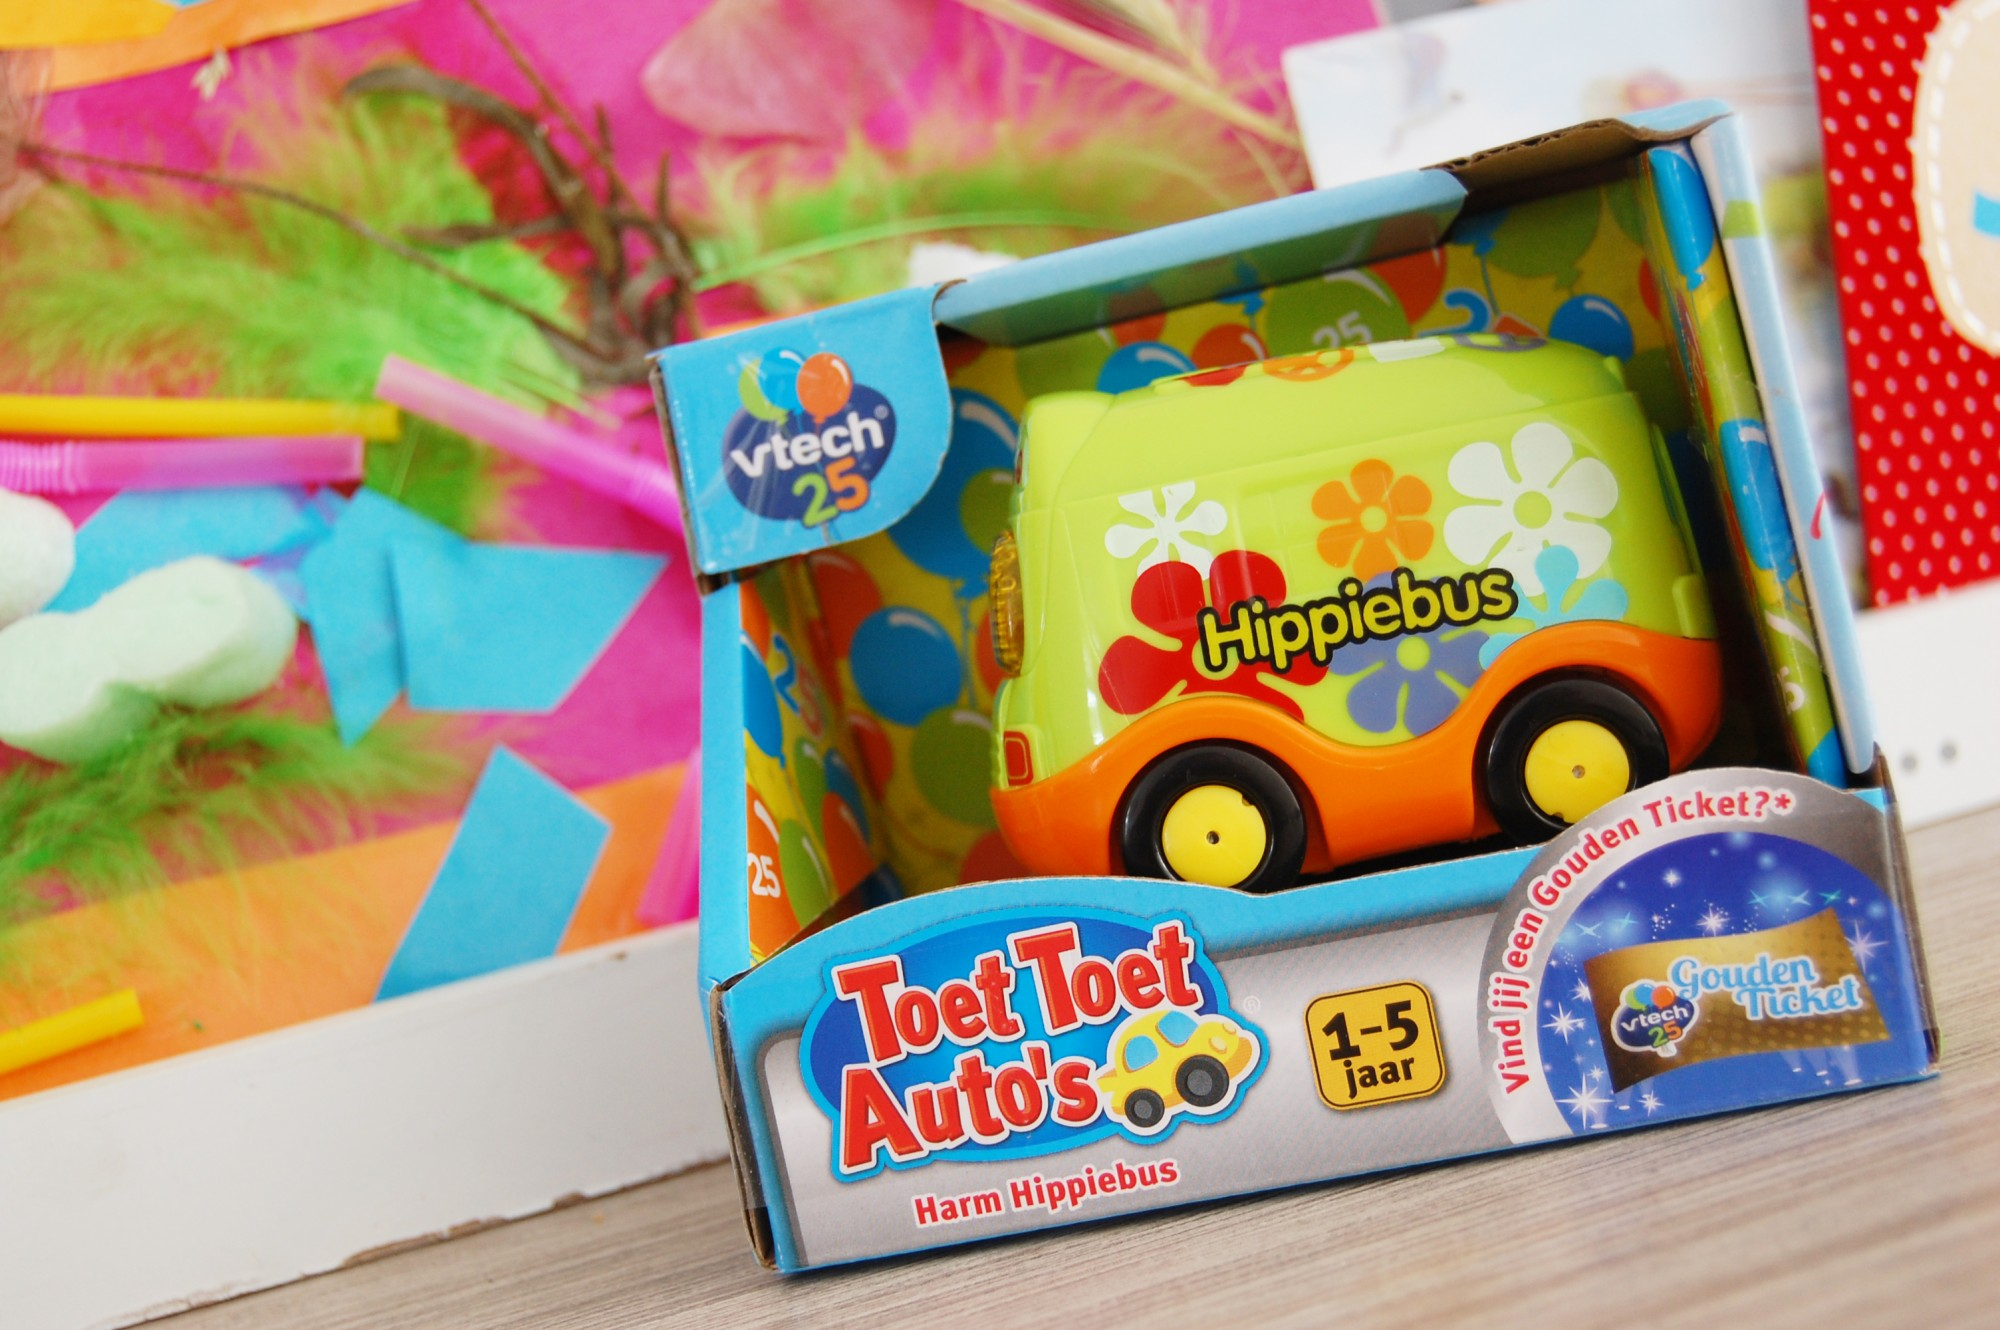 Vtech Harm Hippiebus